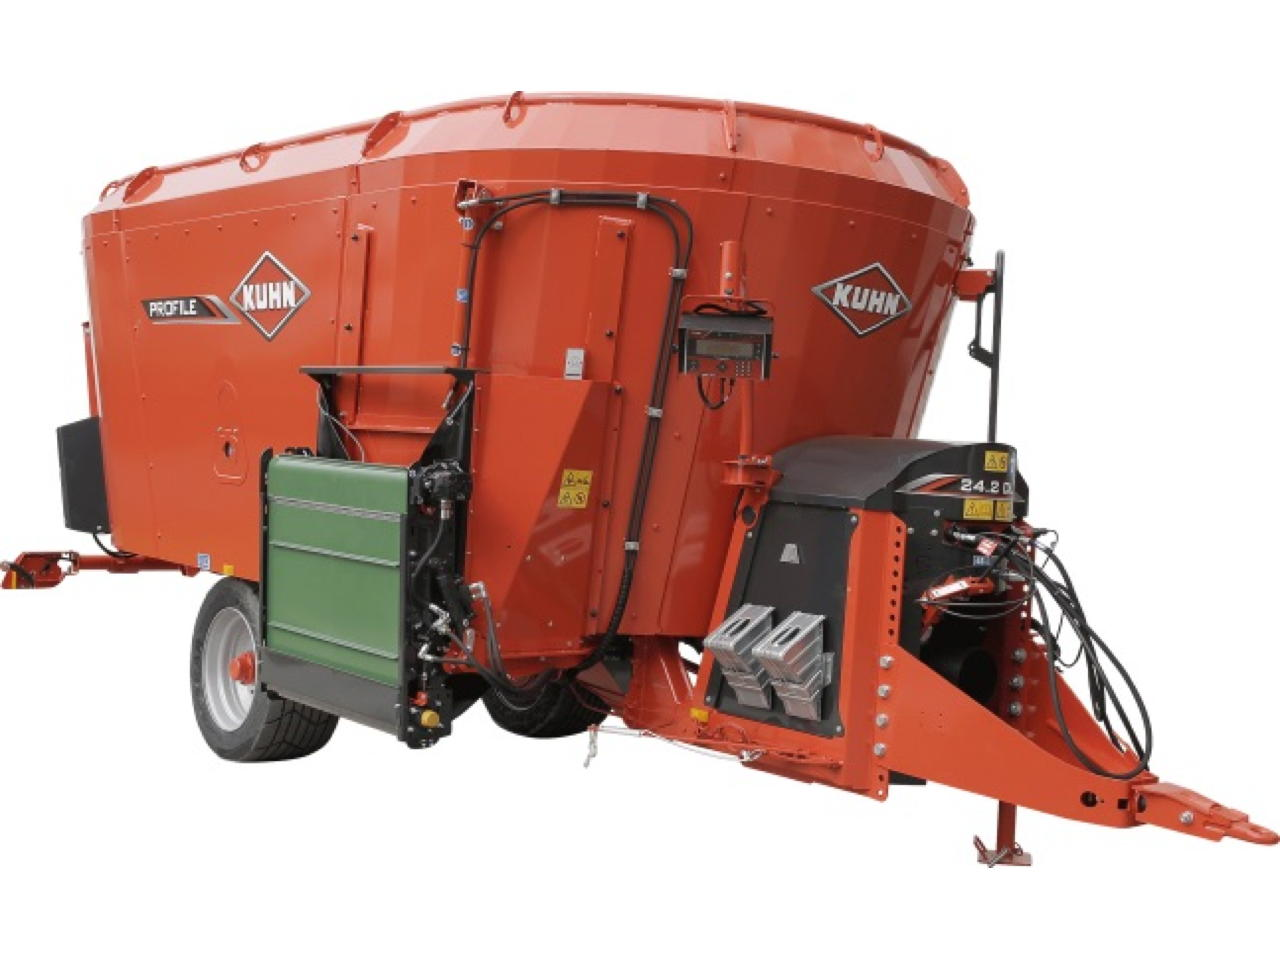 Kuhn Profile 2 DL